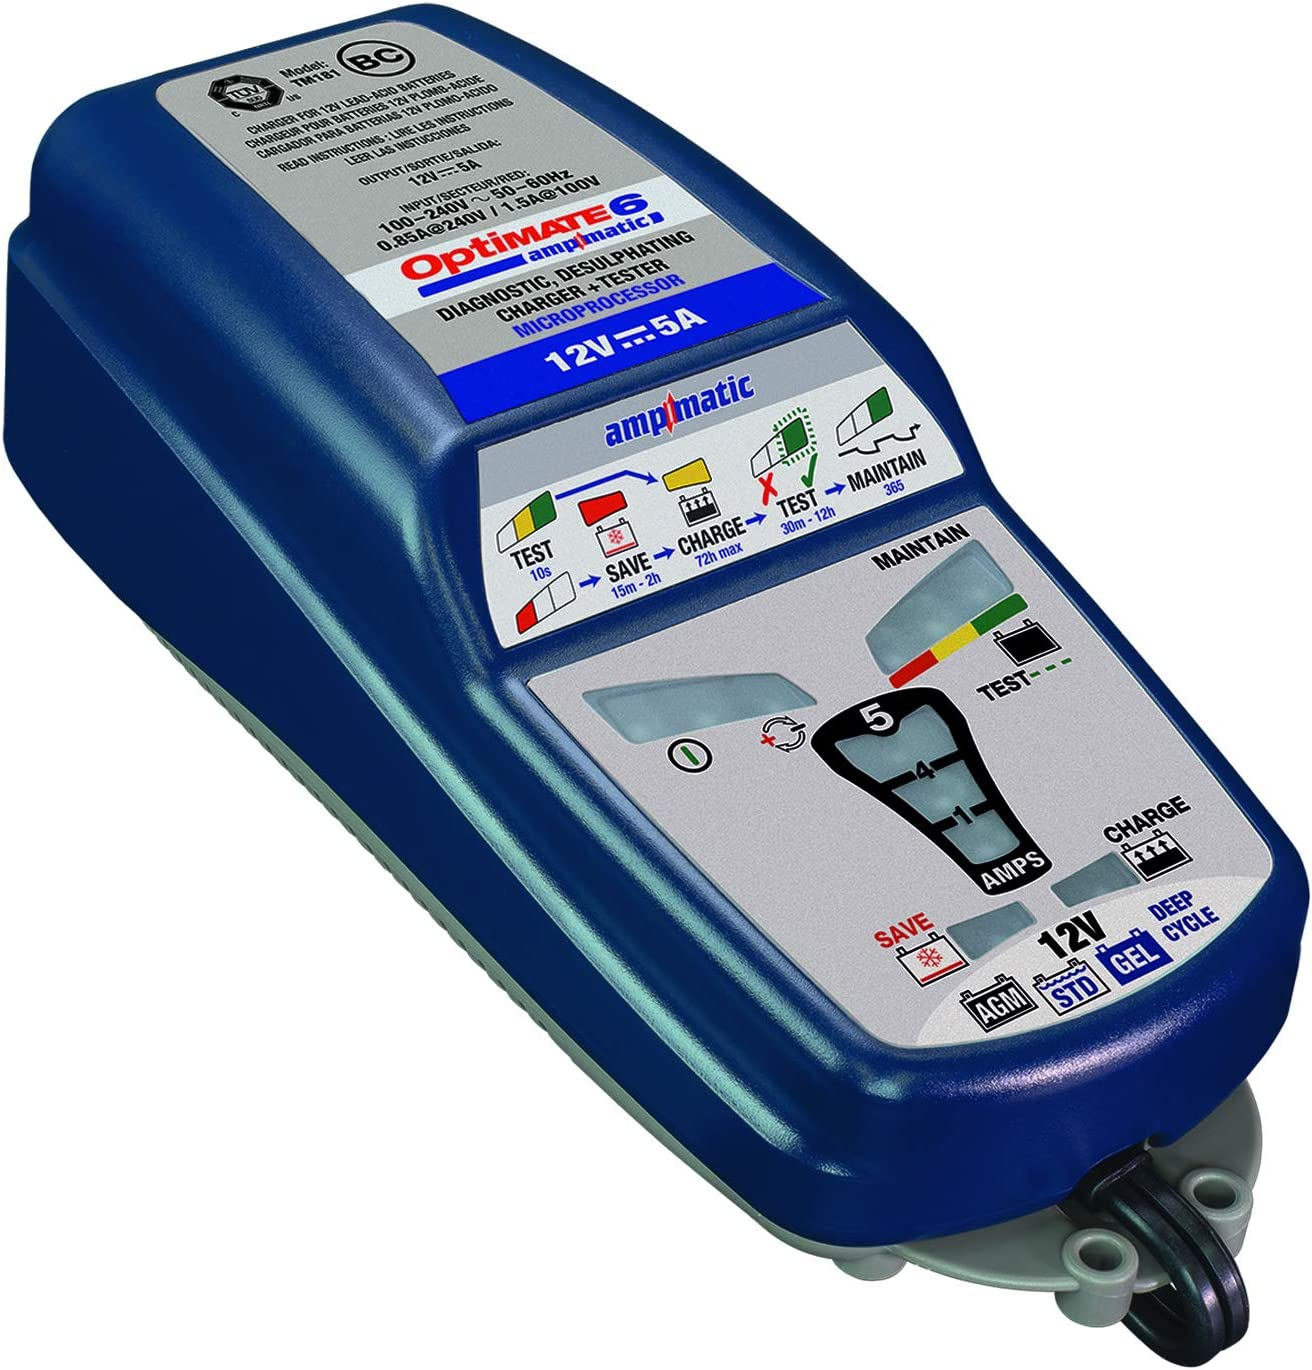 OptiMATE 6 Ampmatic, TM-181, 9-step 12V 5A sealed battery saving charger & maintainer